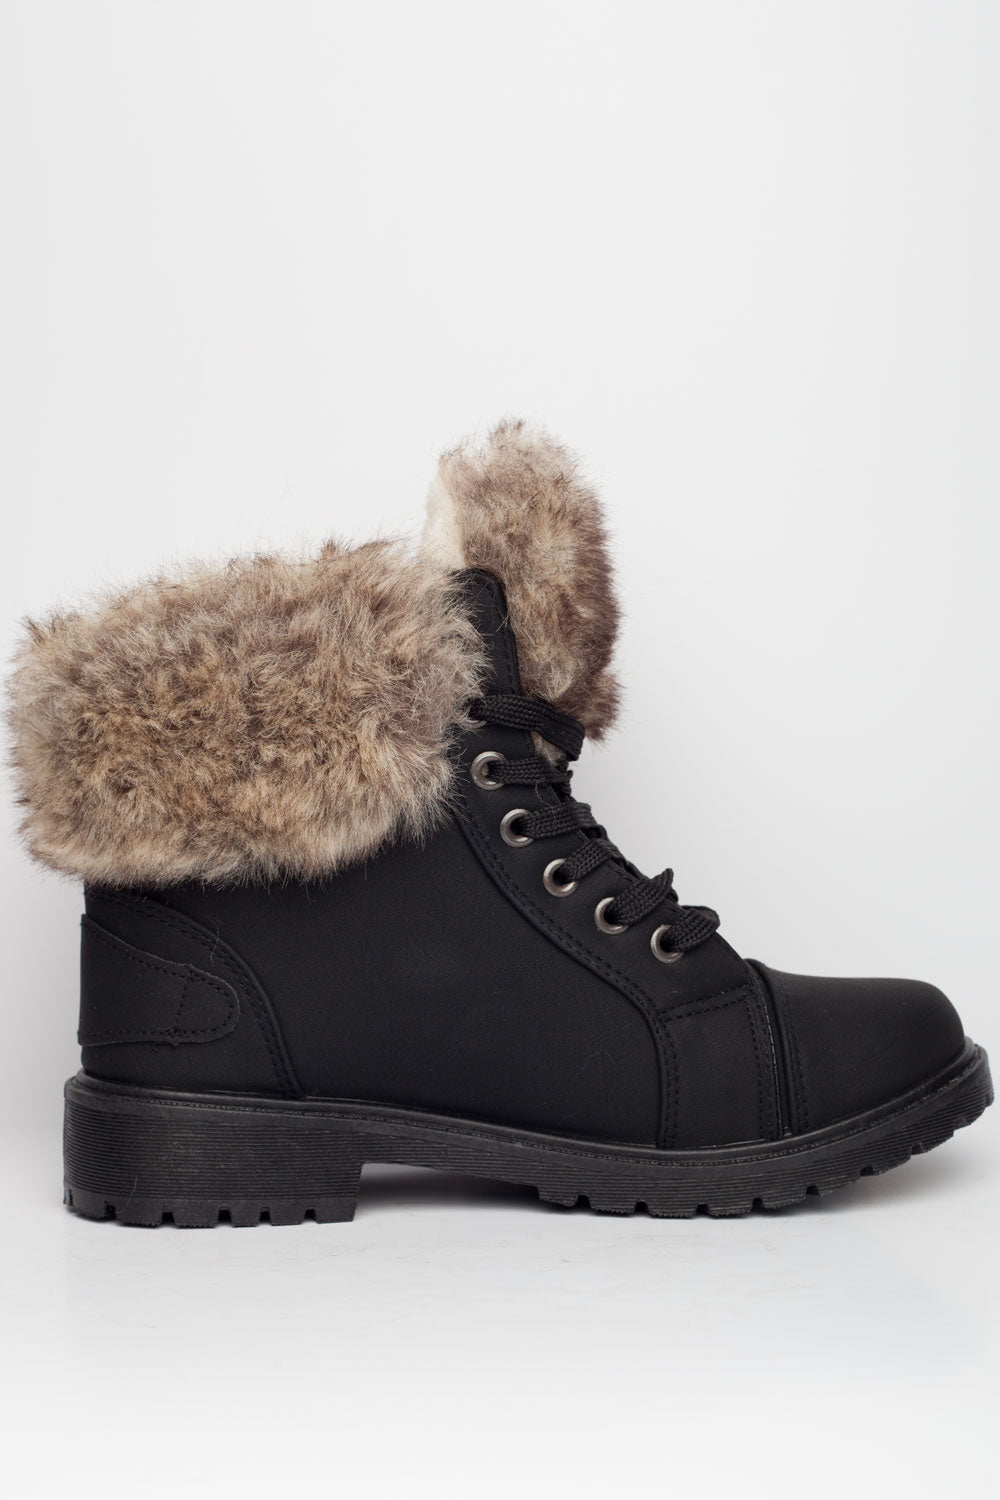 Womens Faux Fur Lined Ankle Boots Black